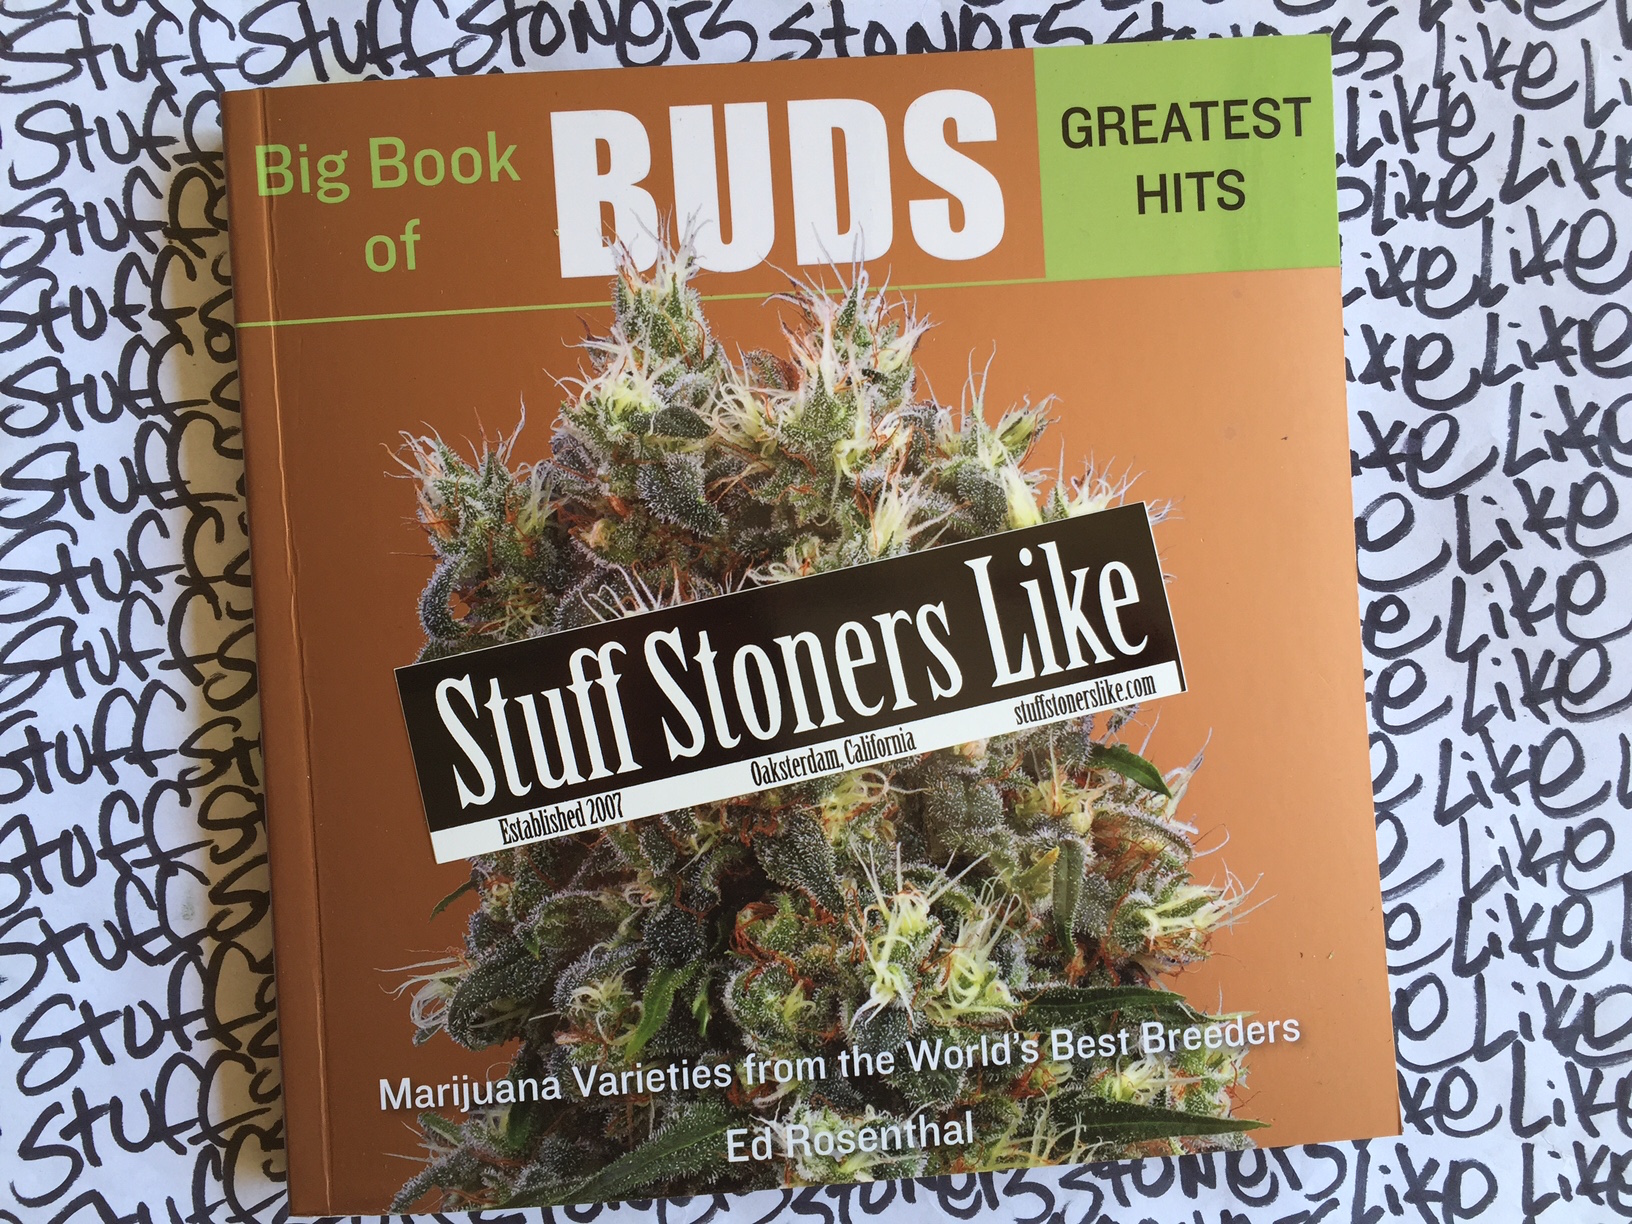 Big Book of Buds Greatest Hits by Ed Rosenthal